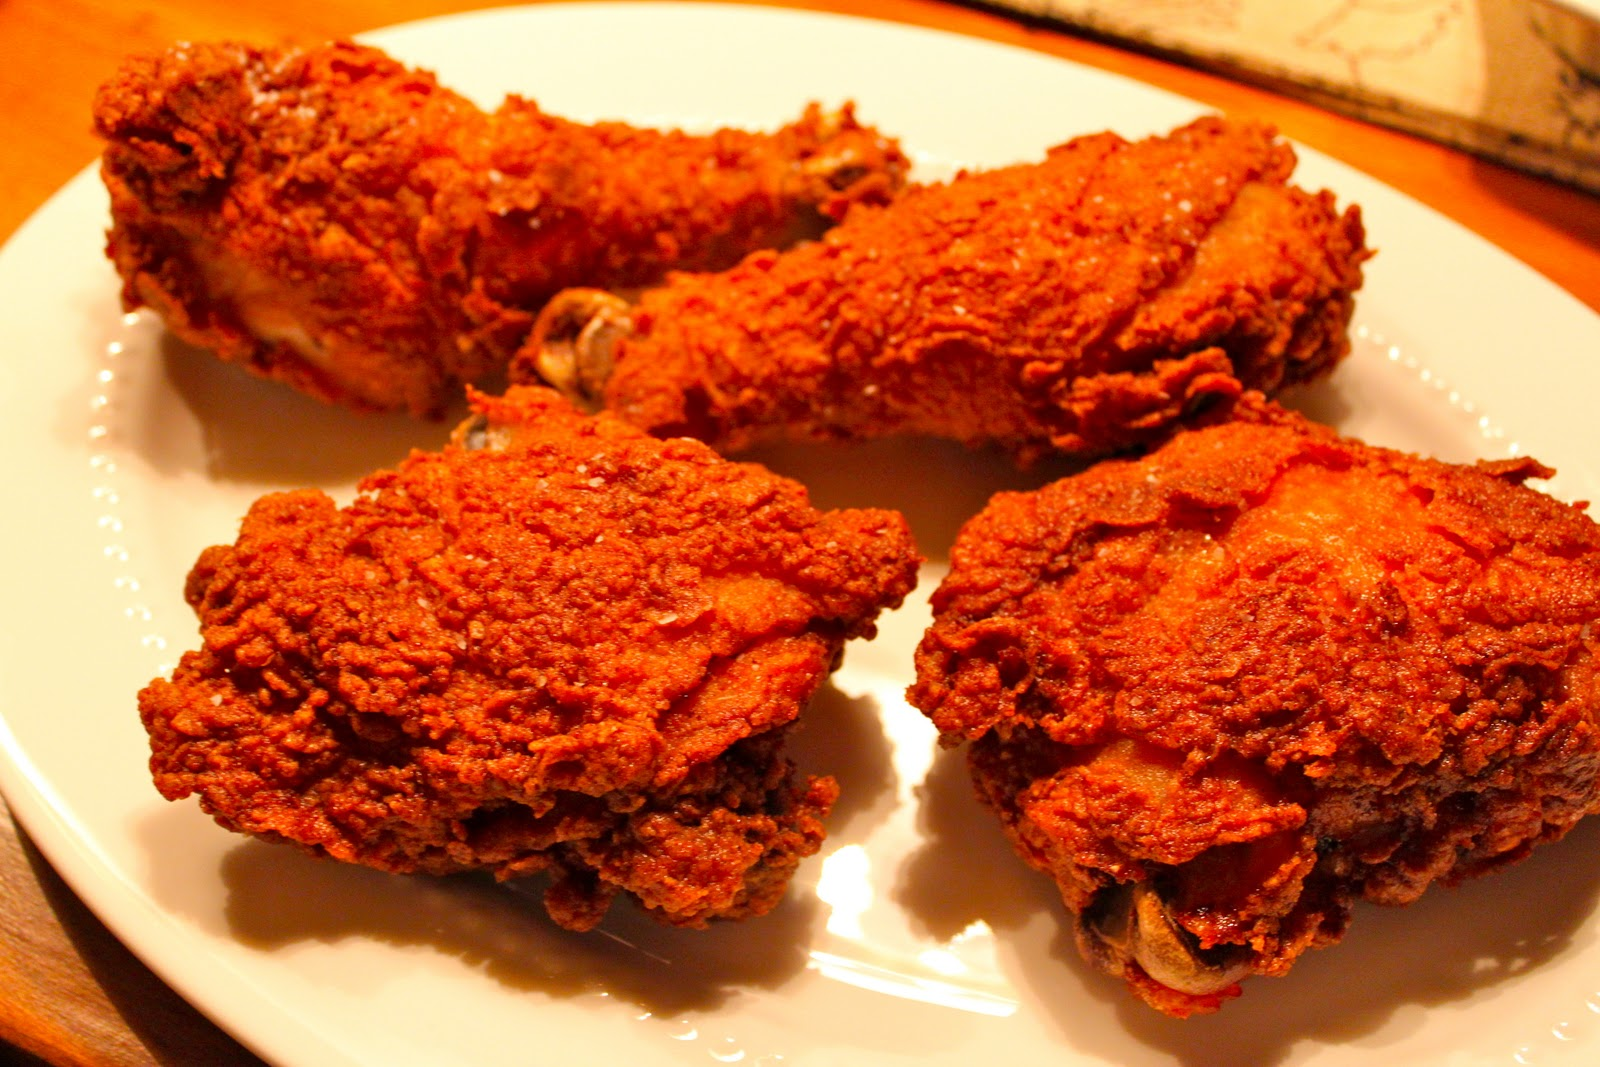 West End Epicure: World's Greatest Fried Chicken